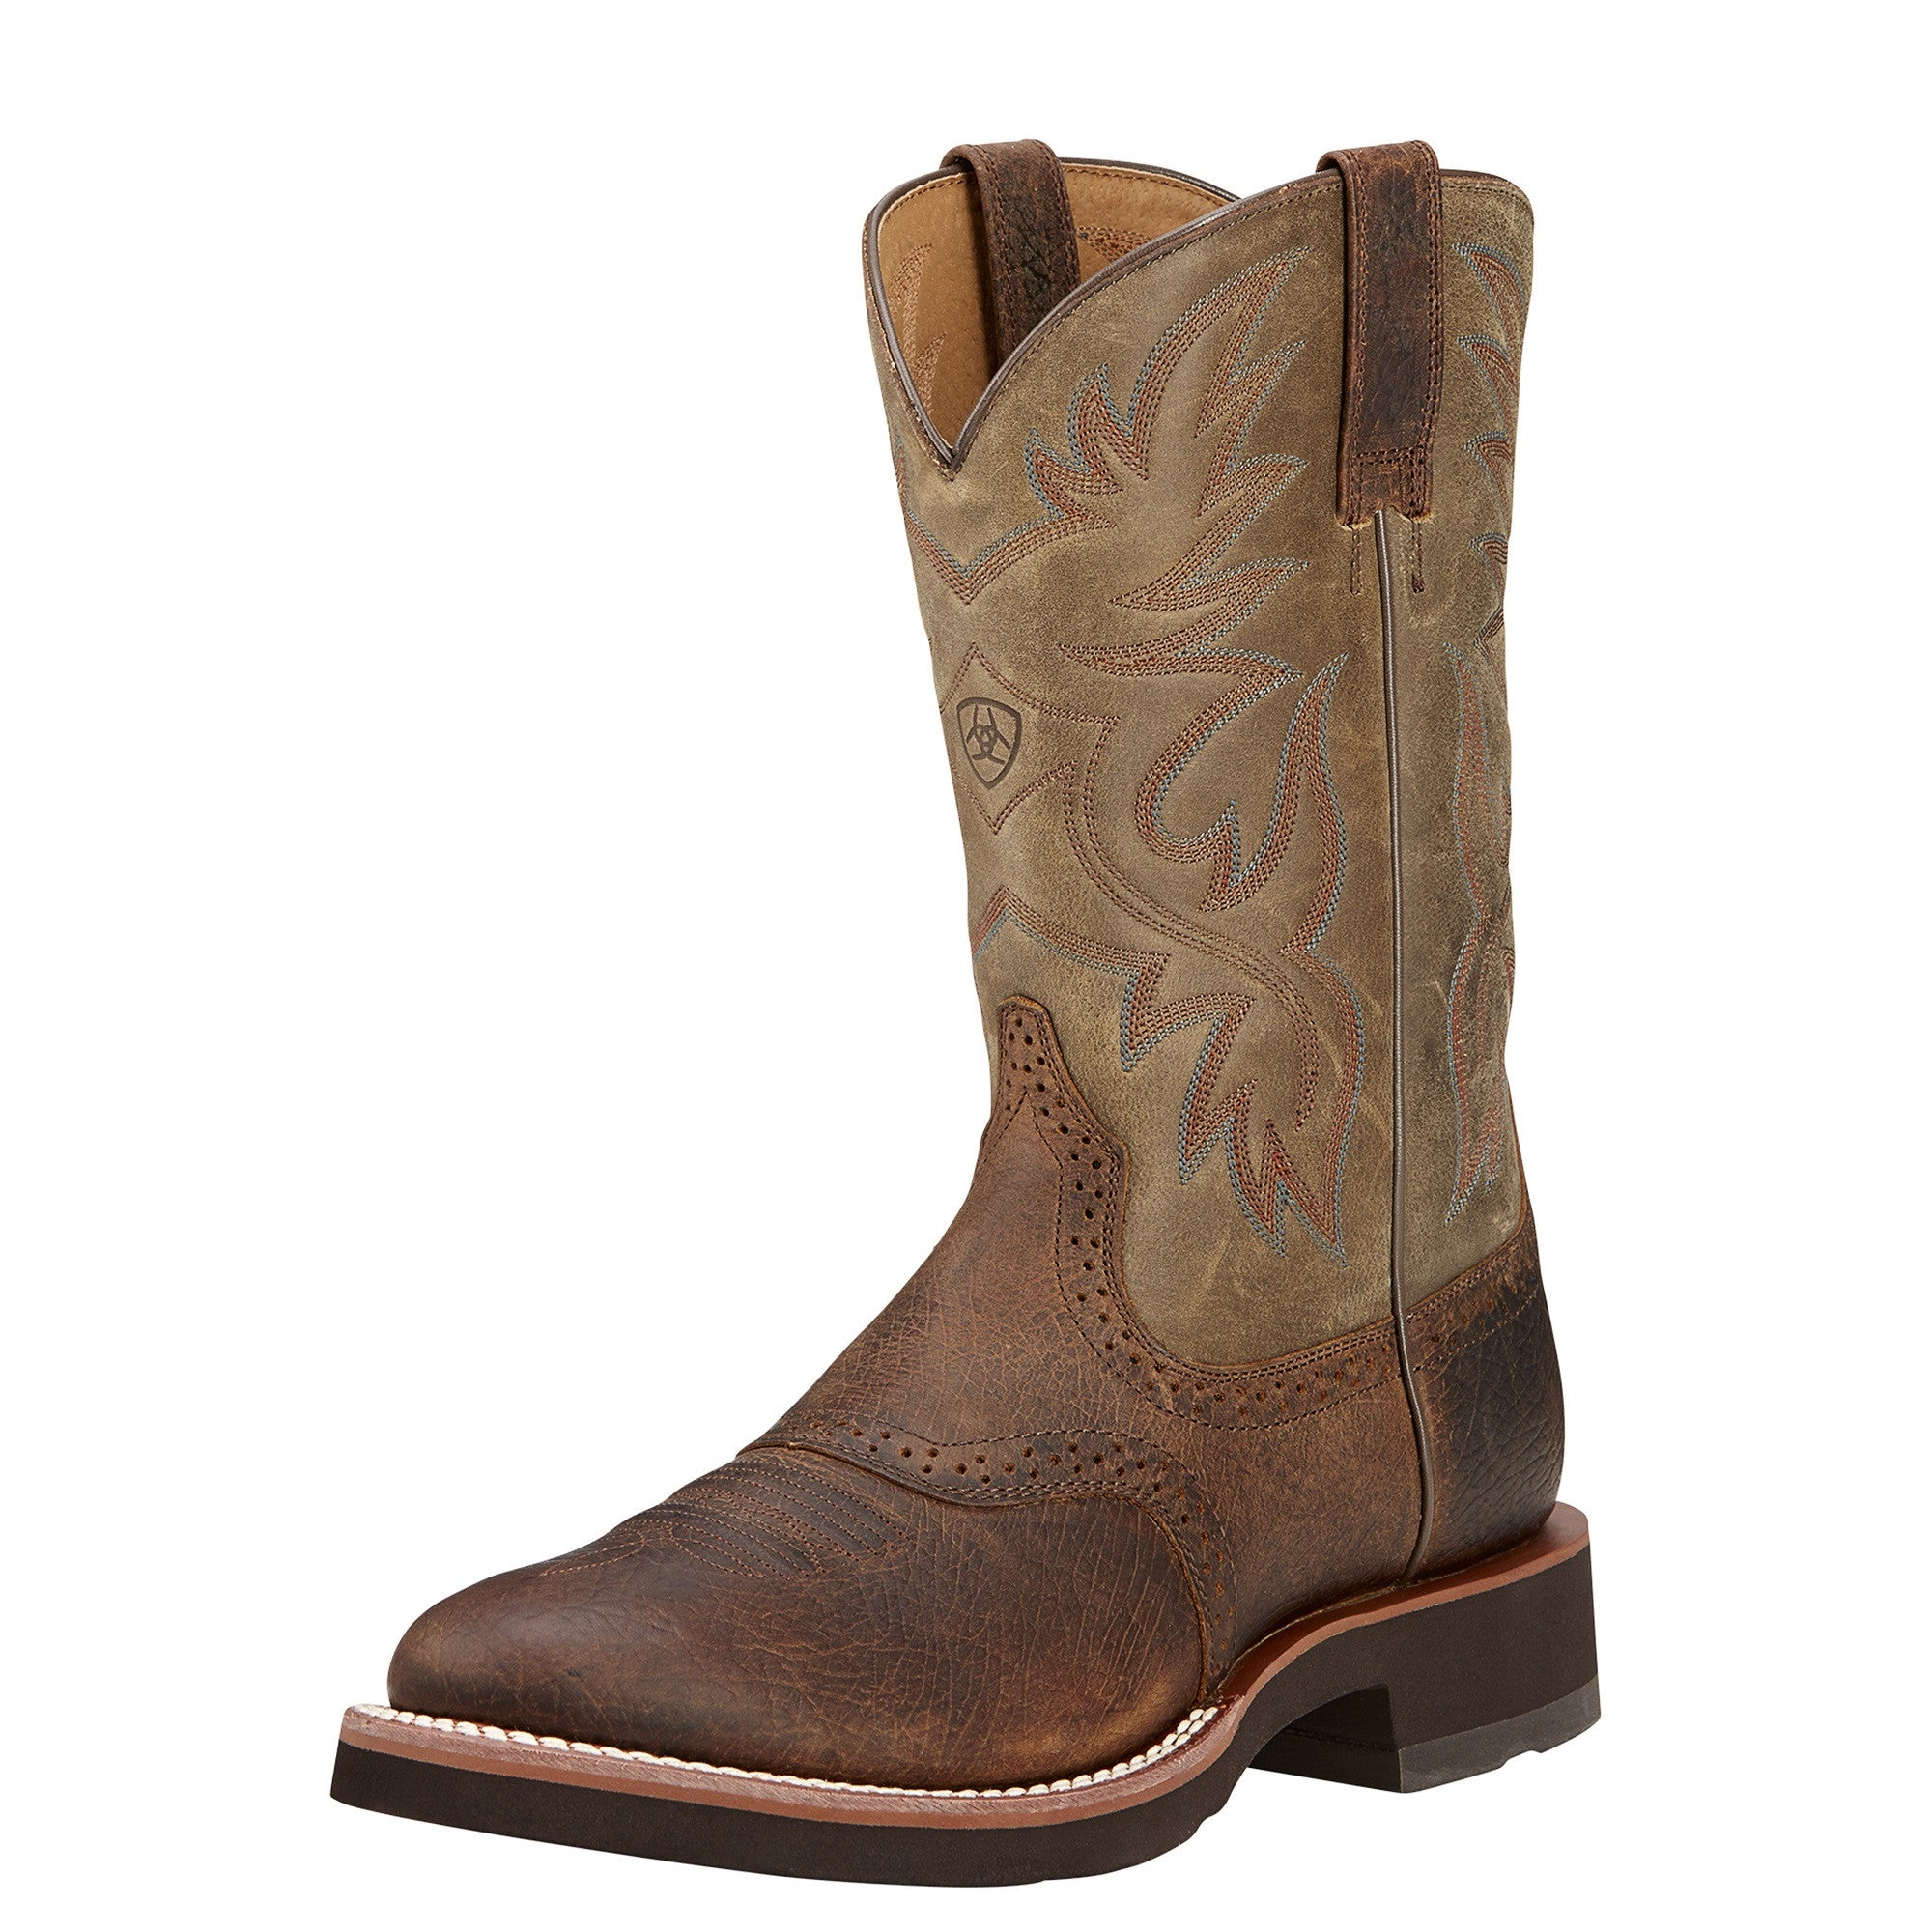 Men's Ariat Heritage Crepe Boot #10002559